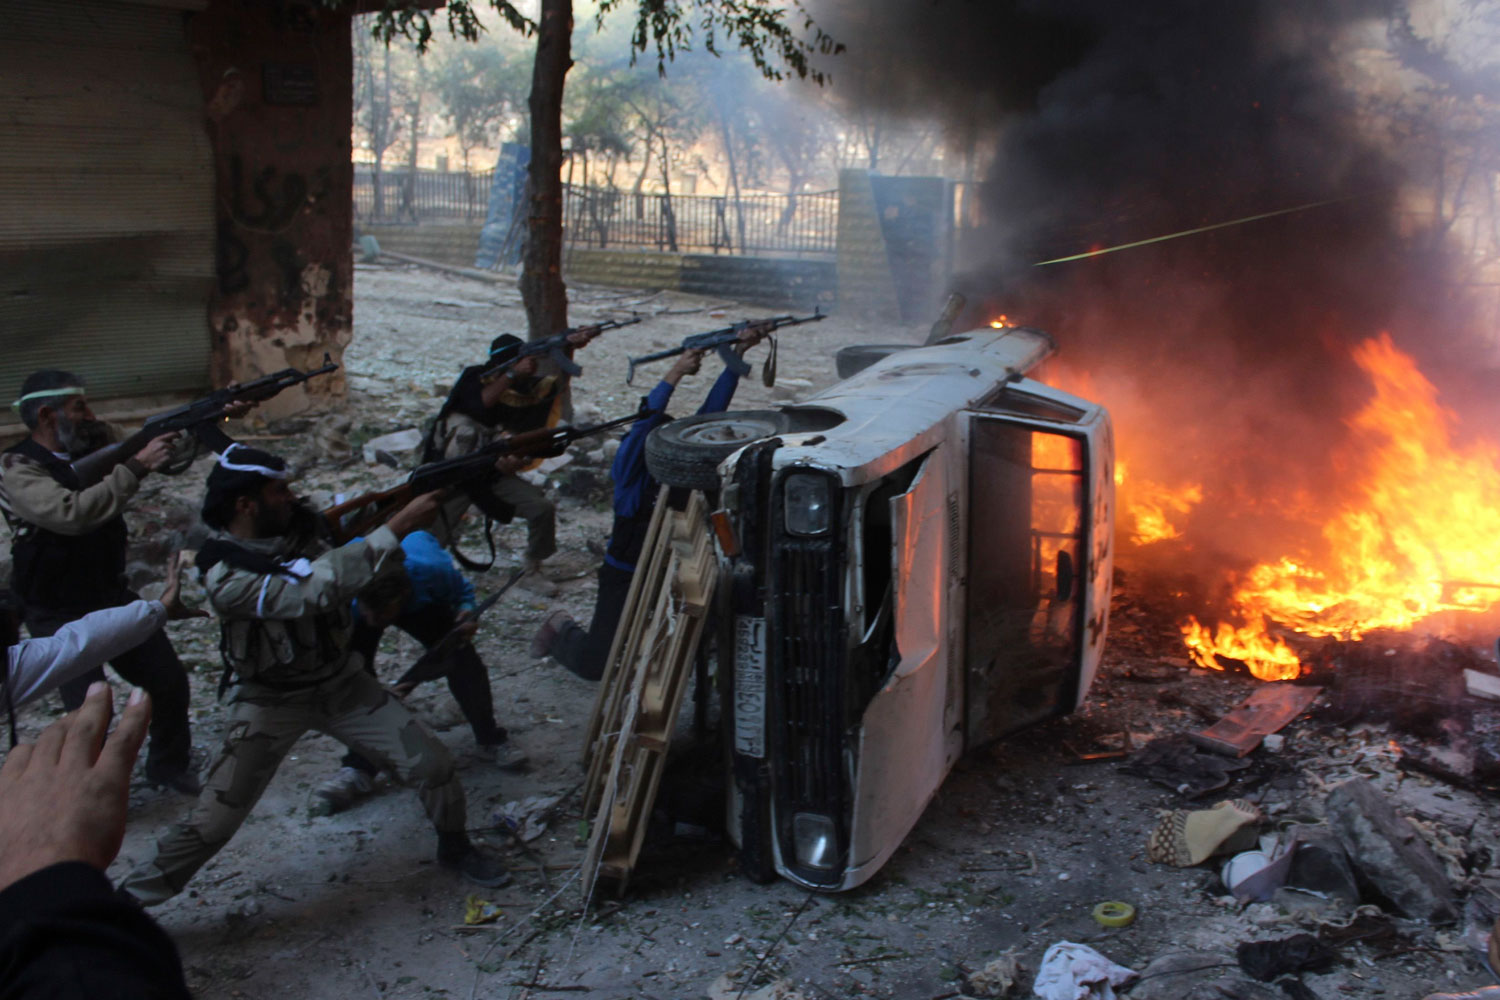 Oct. 9, 2013. Free Syrian Army fighters take position behind a damaged car as they fire weapons on forces loyal to President Bashar Assad in Aleppo's Salaheddine neighborhood. Tires and other objects are set on fire to provide cover from the snipers.